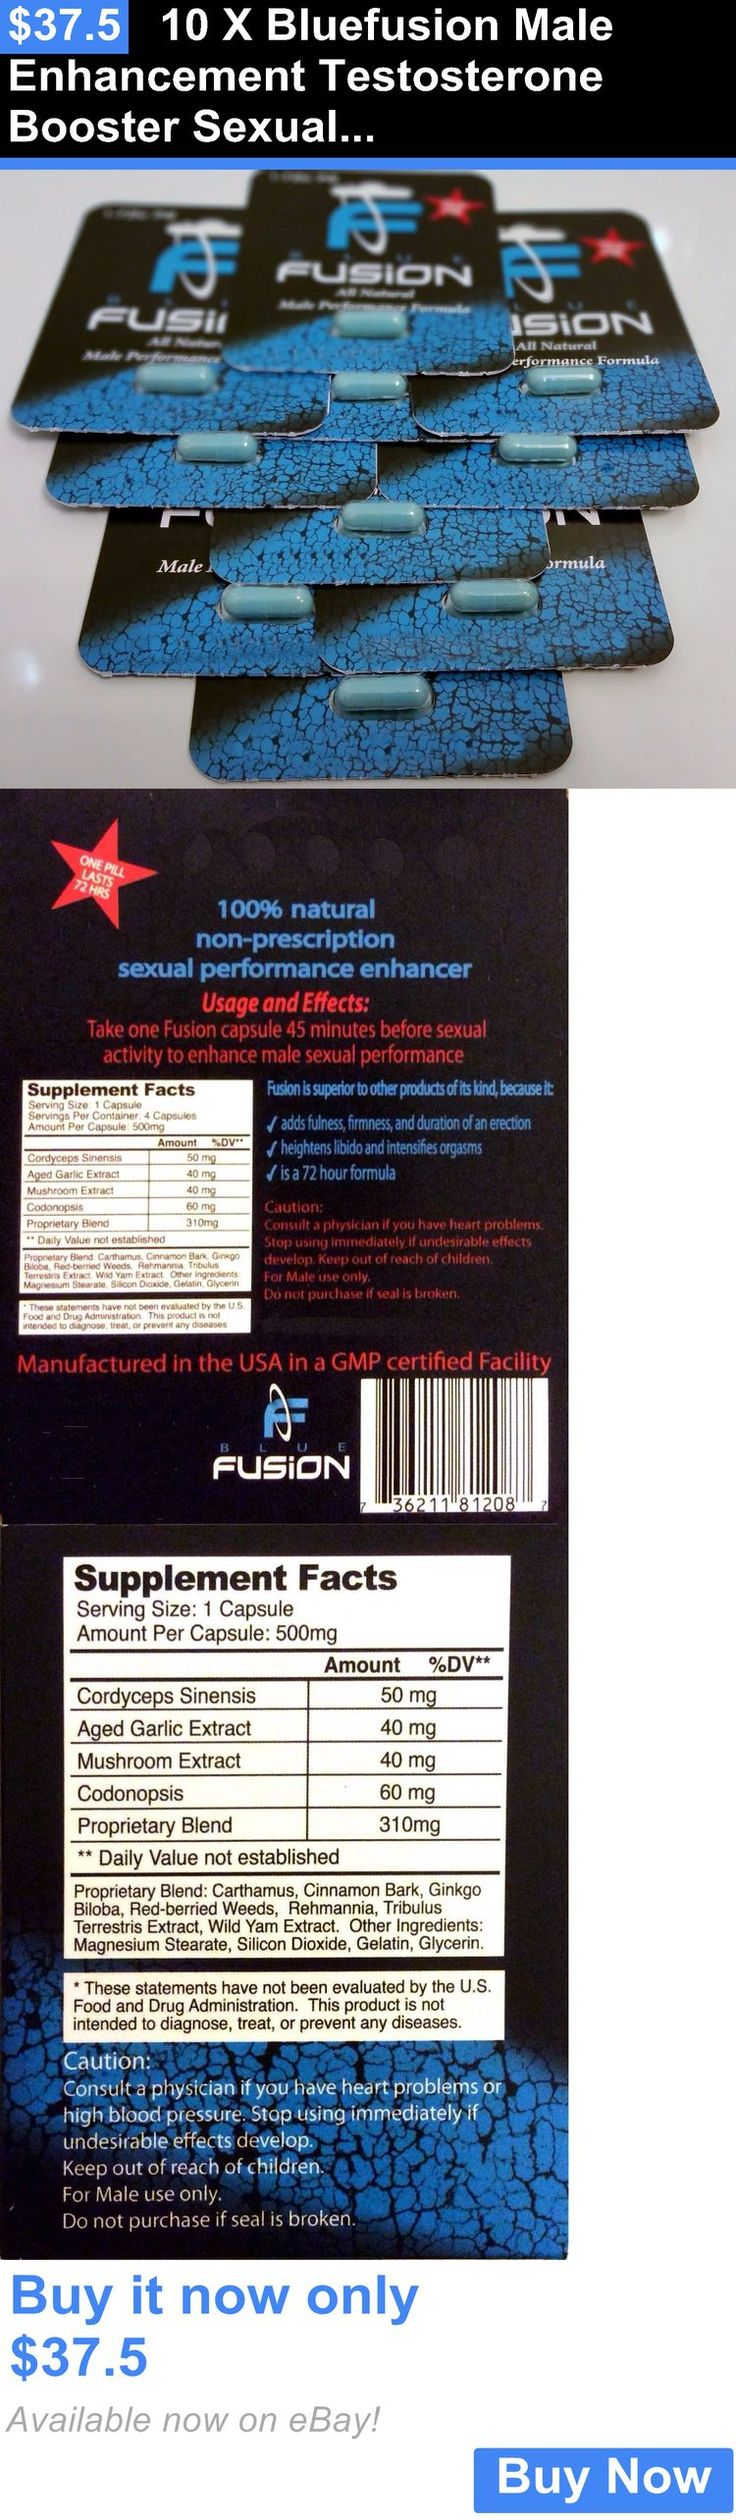 Dietary Supplements: 10 X Bluefusion Male Enhancement Testosterone Booster Sexual Enhancer - 10 Pills BUY IT NOW ONLY: $37.5 #FF #F4F #tagforlikes #vitamins #animals